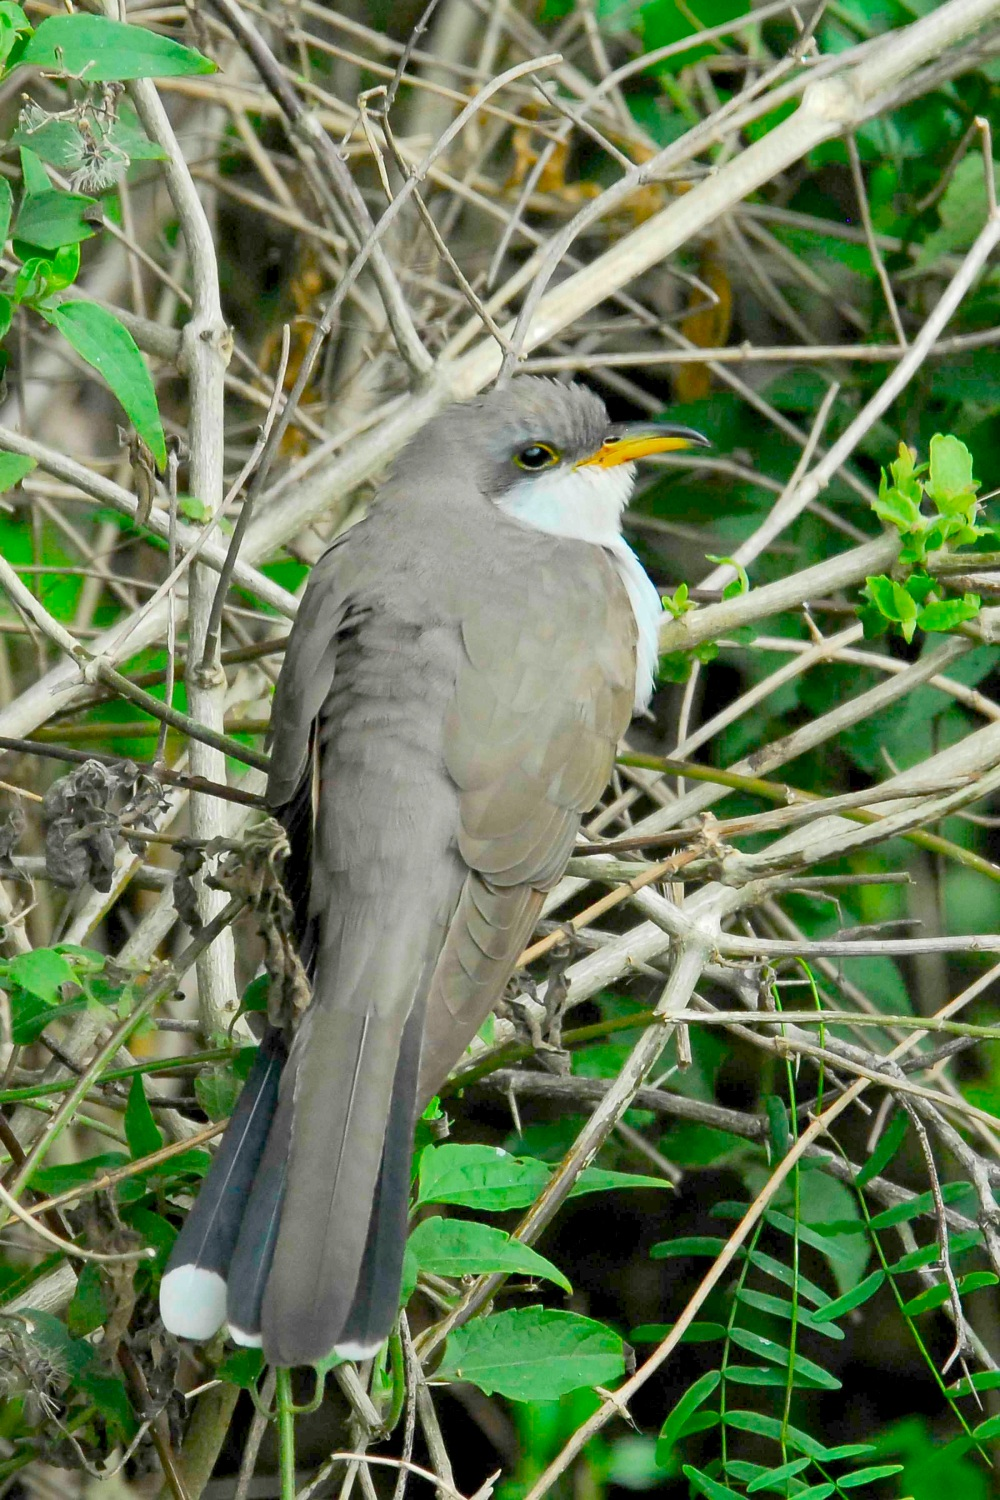 yellow-billed-cuckoo-abaco-bahamas-tom-sheley-copy